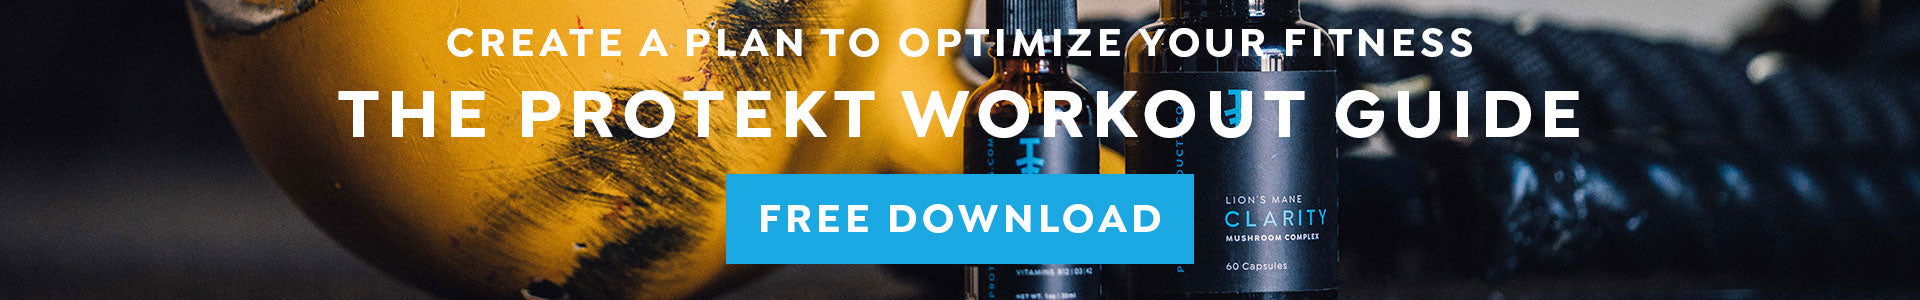 Download The Protekt Workout Guide